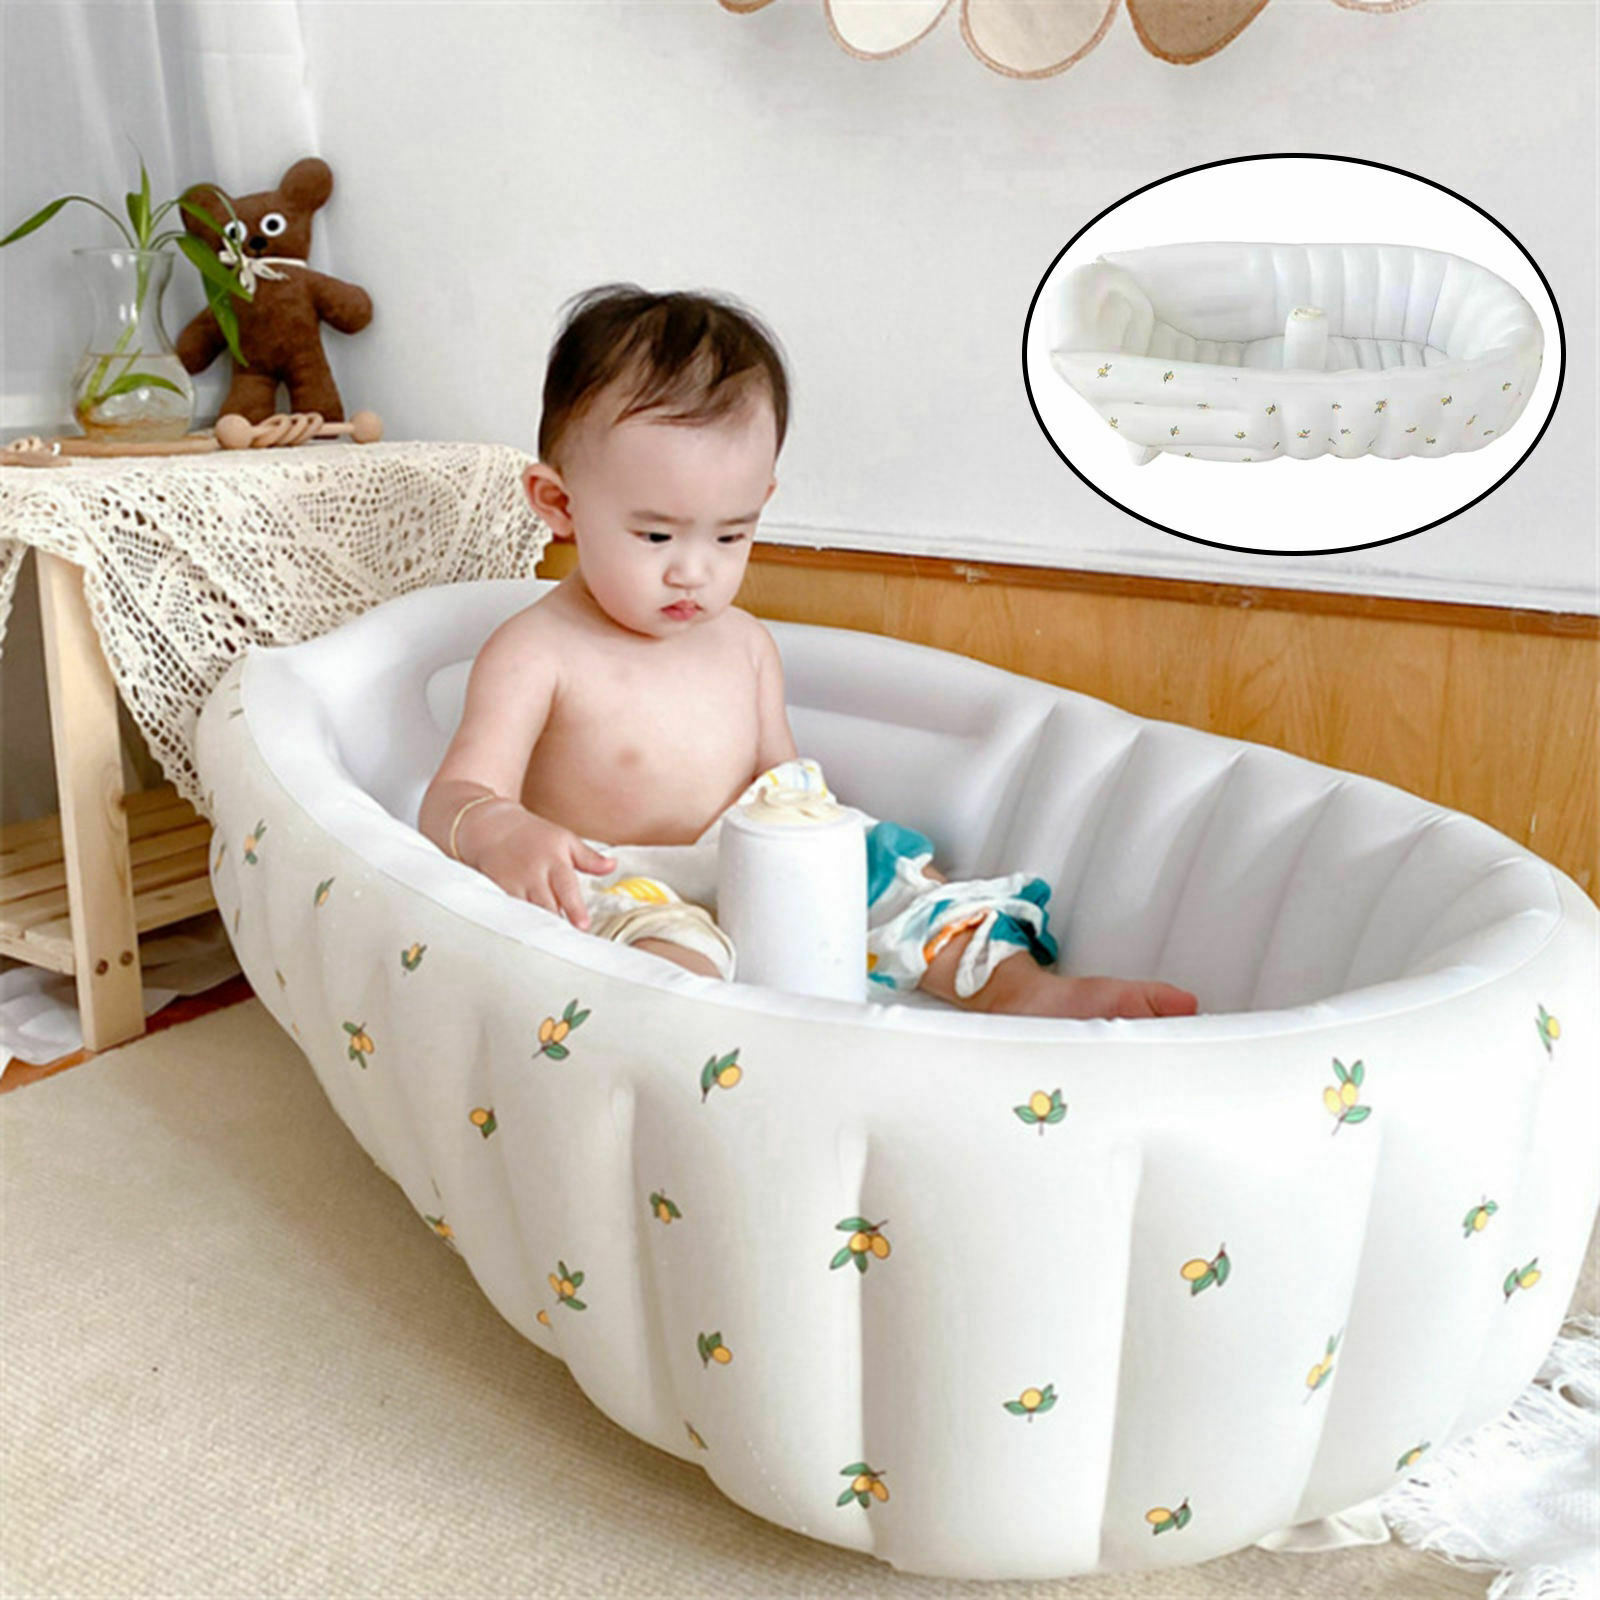 Inflatable Bathtub Protect Baby Skin Thick Drain Plug for Travel Travelling